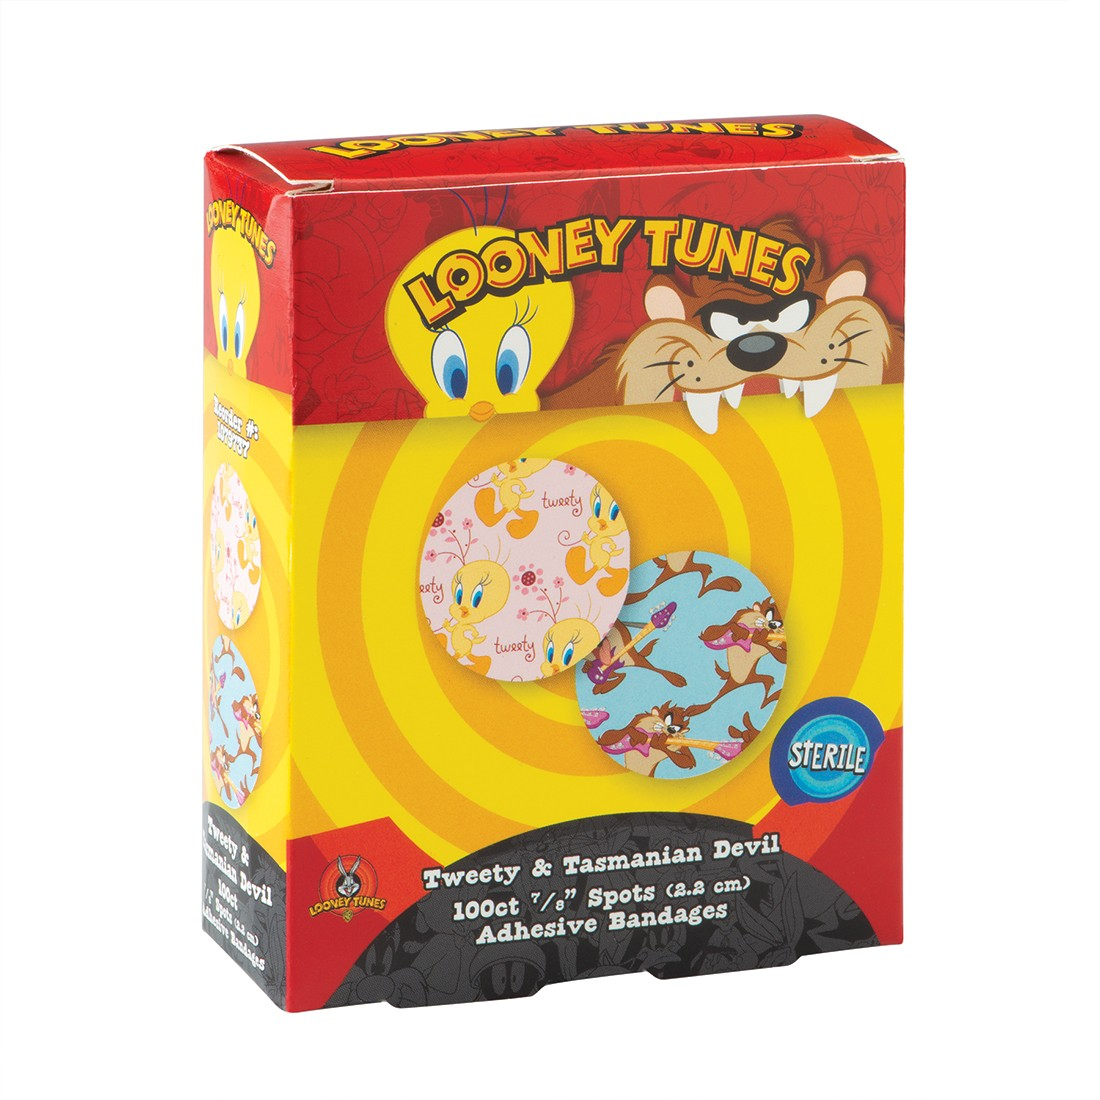 First Aid Looney Tunes Taz & Tweety Spot Bandages [image]